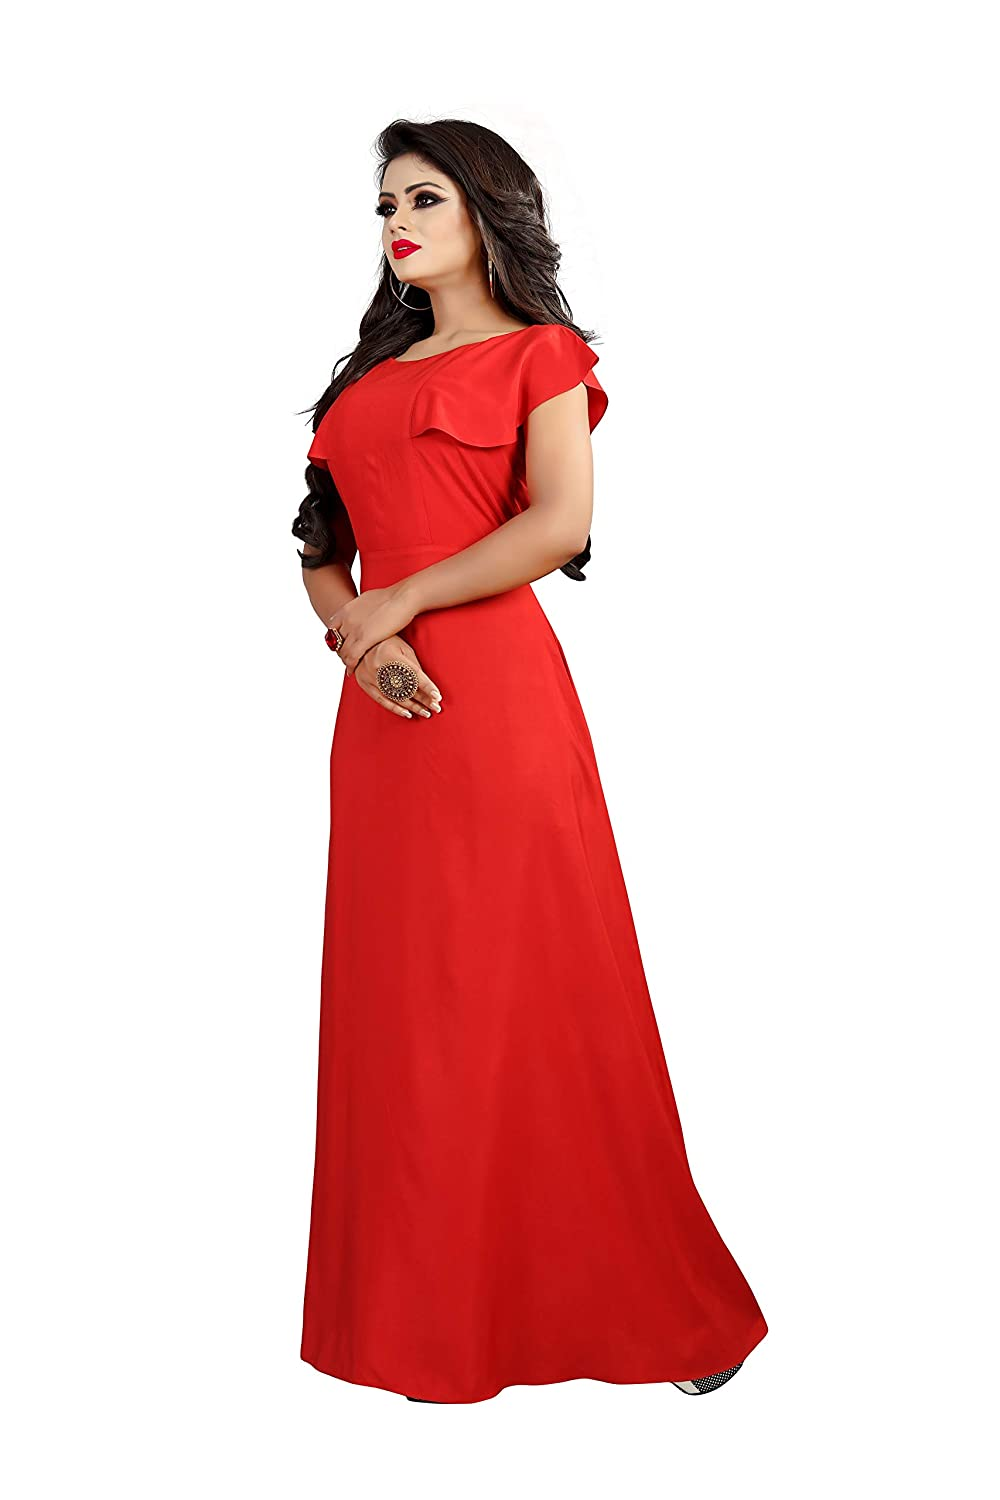 e3a5a3bf875 LEE FASHION RED Women s CREPE